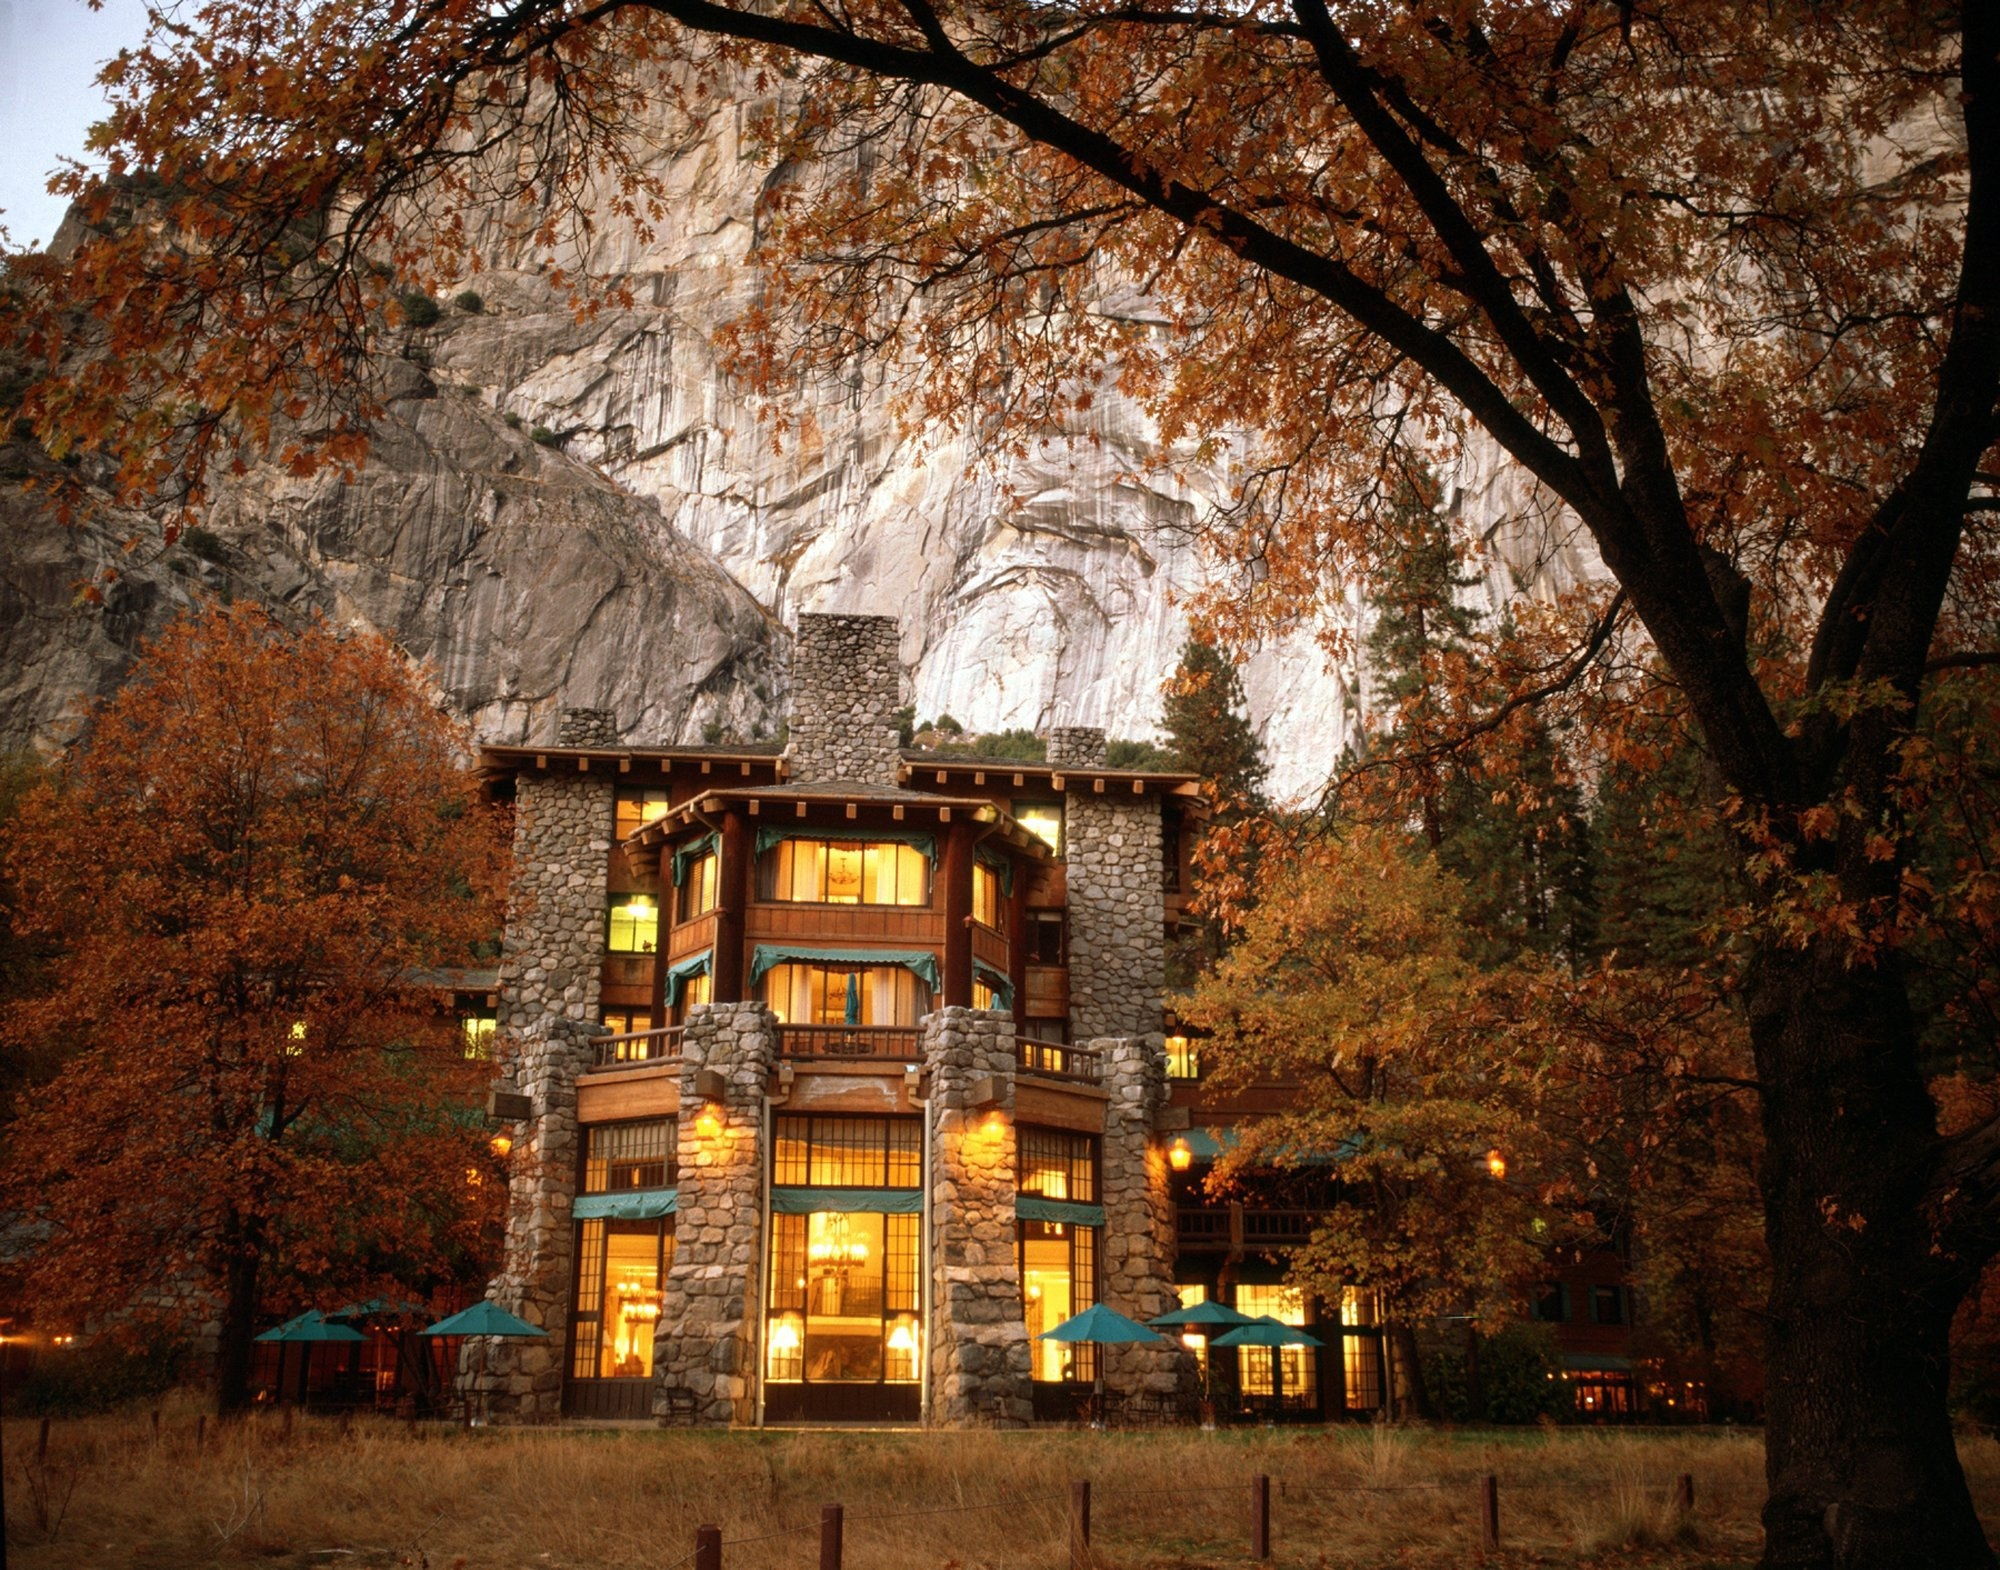 Ahwahnee Hotel, where the Jacobs family made an emotional visit on its annual vacation this summer, is one of the landmarks at Yosemite, a National Park Service crown jewel that Delaware North has served since 1993.